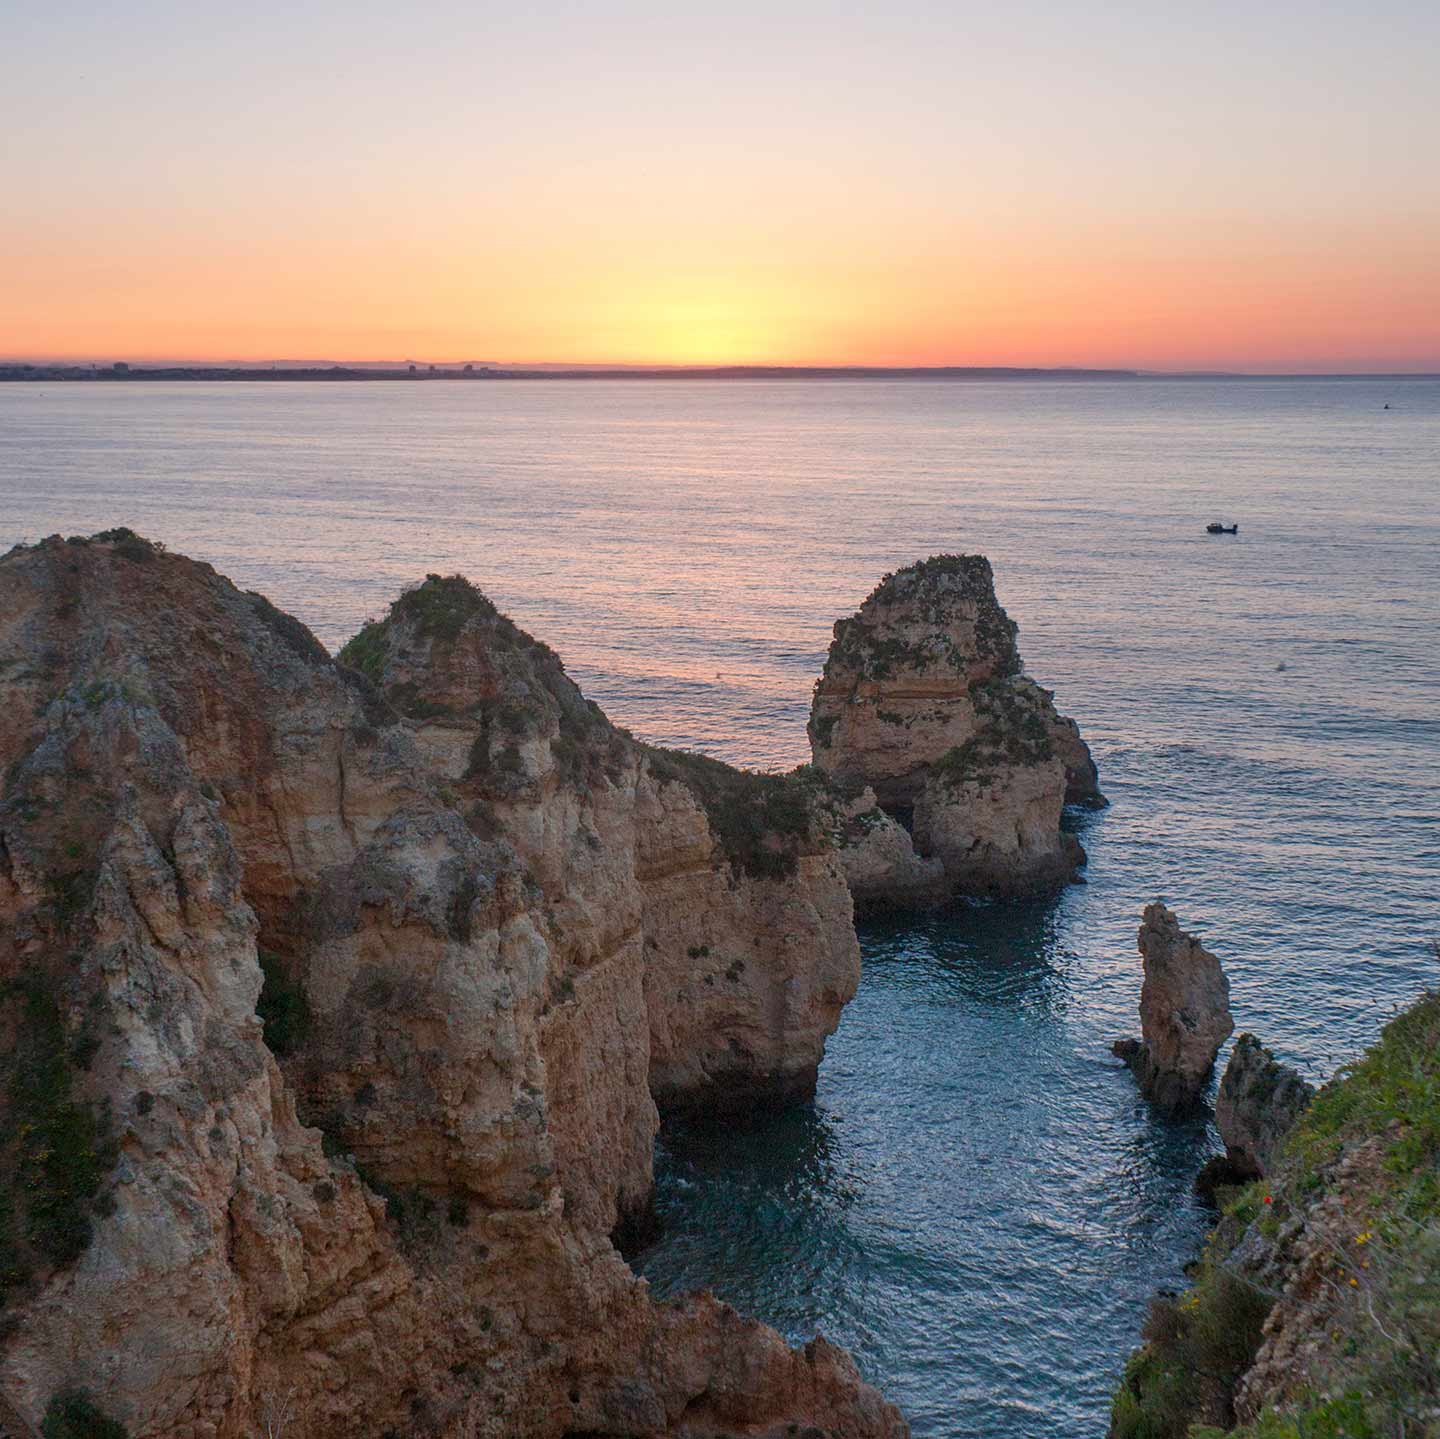 Image of sunrise over the Ponta da Piedade, Lagos, Algarve